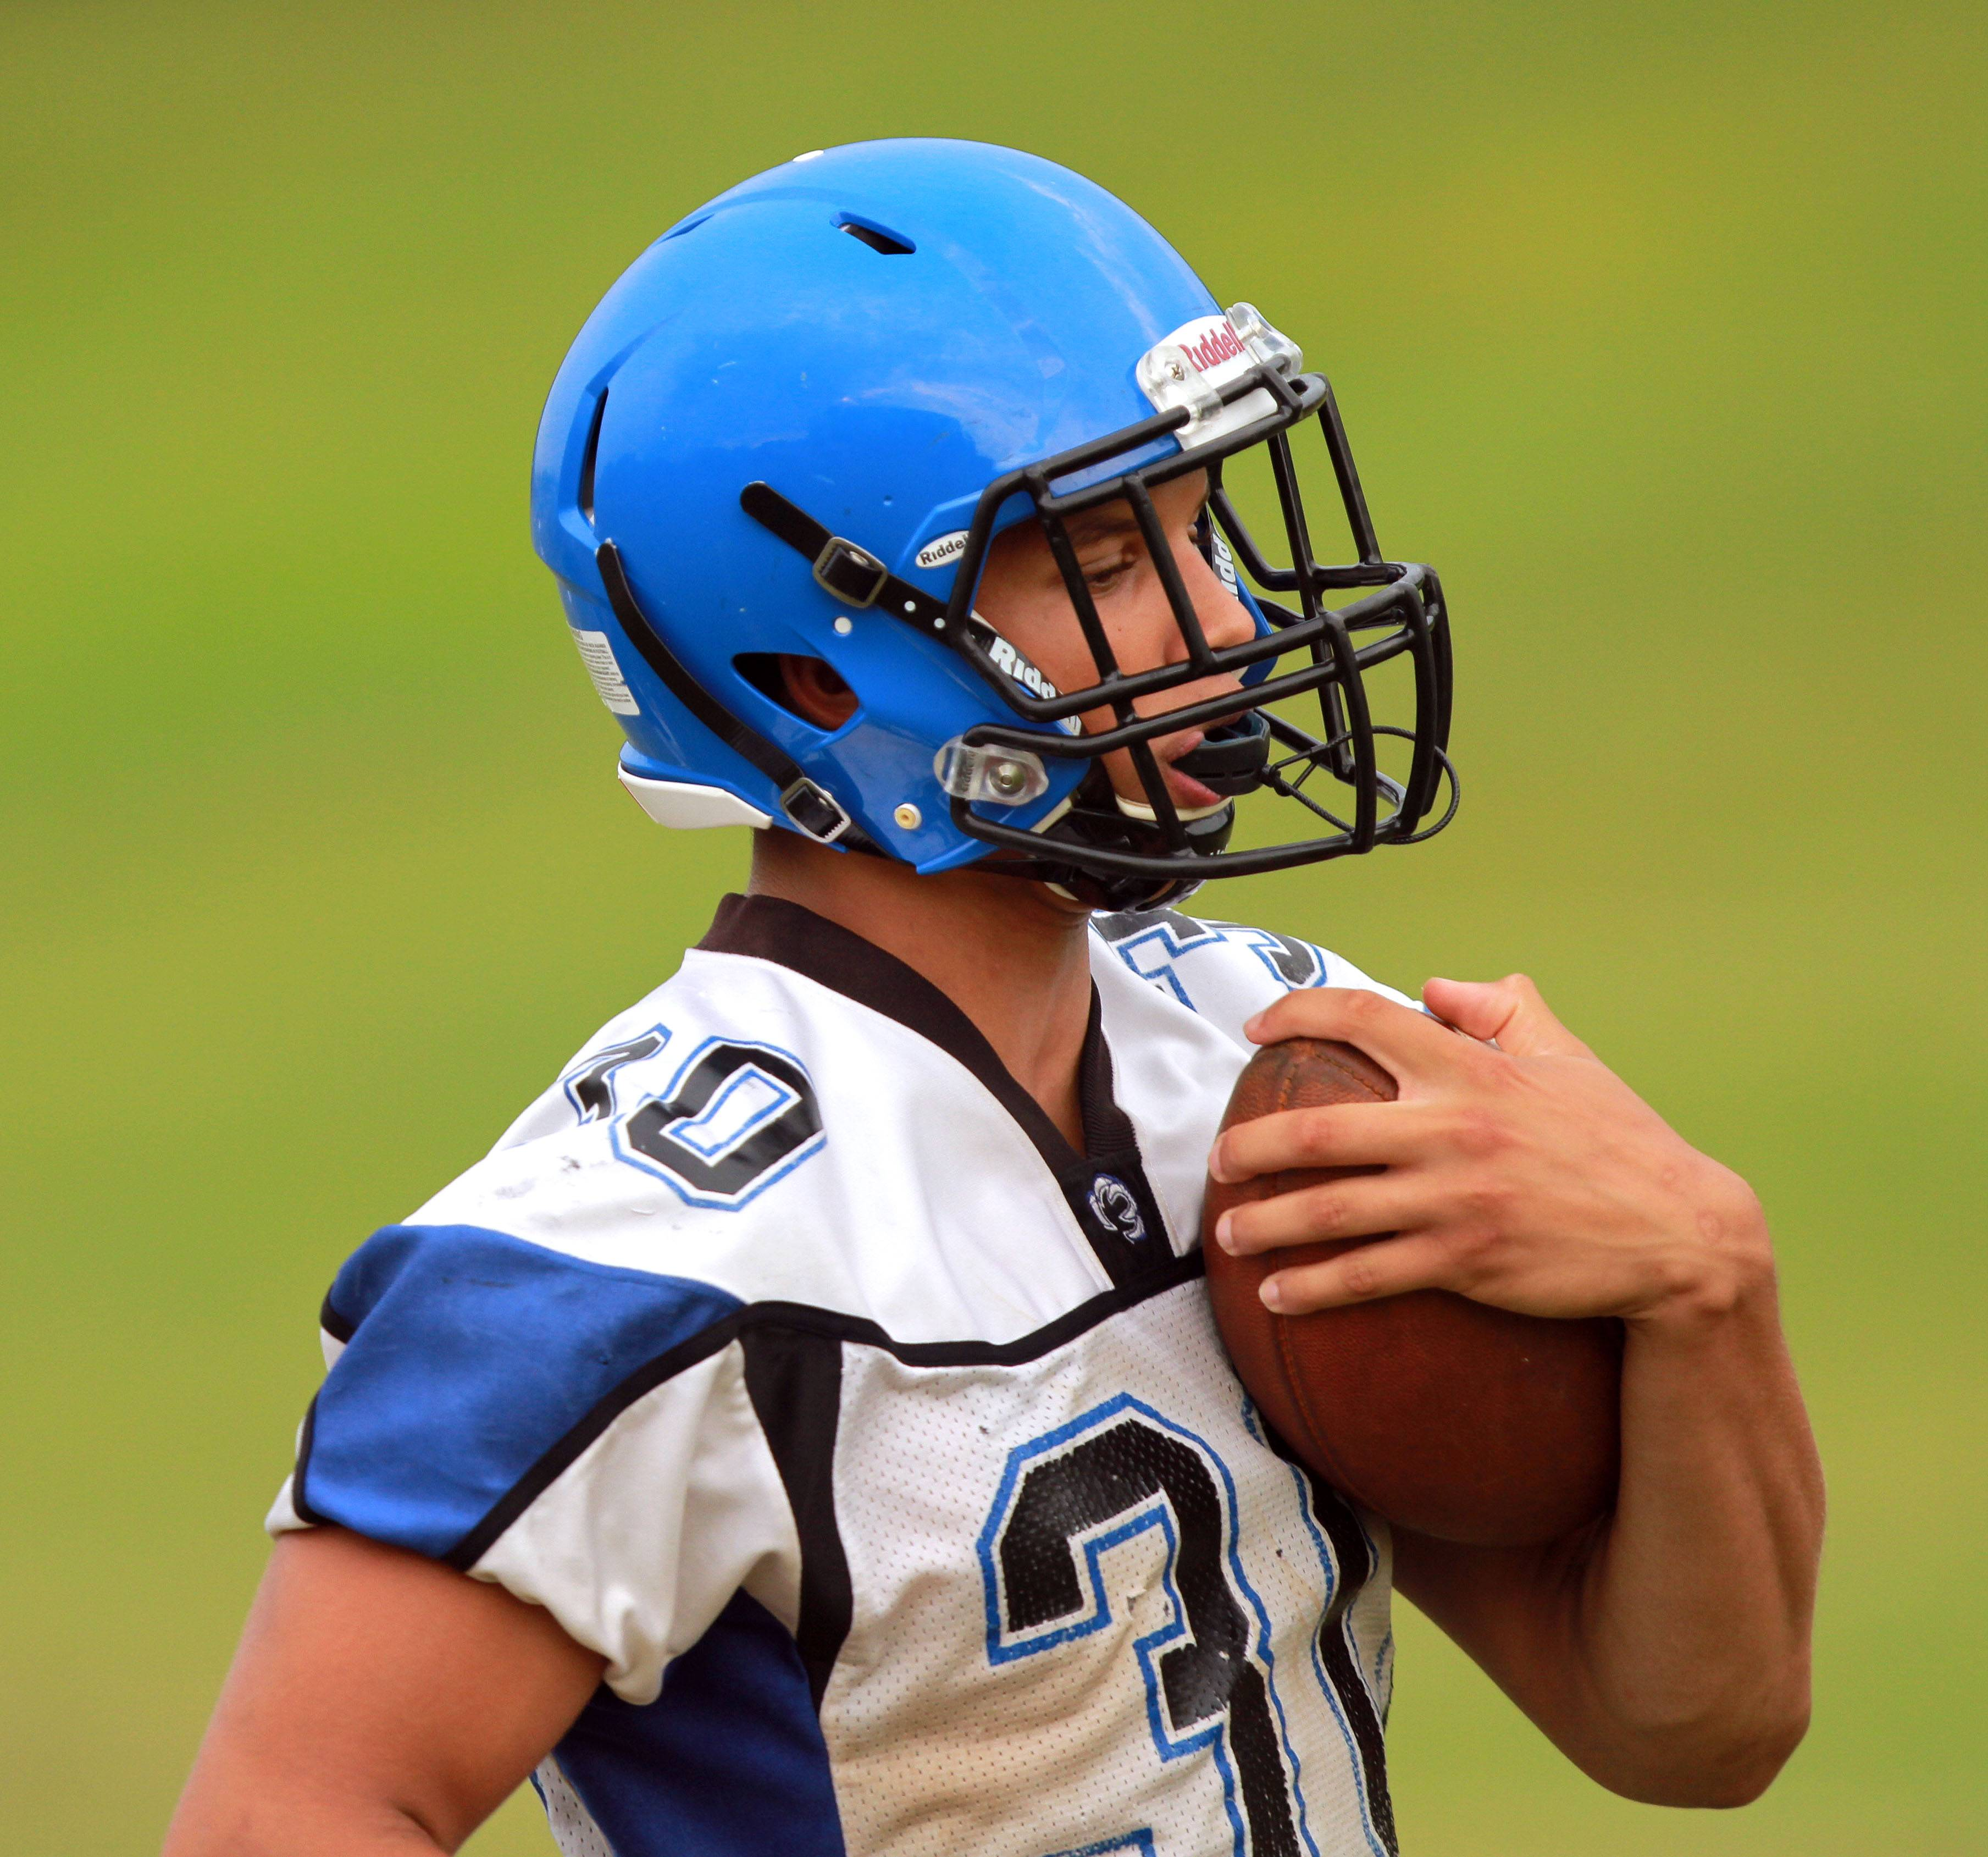 Ben Klett runs with the ball during football practice Monday at Lake Zurich High School.